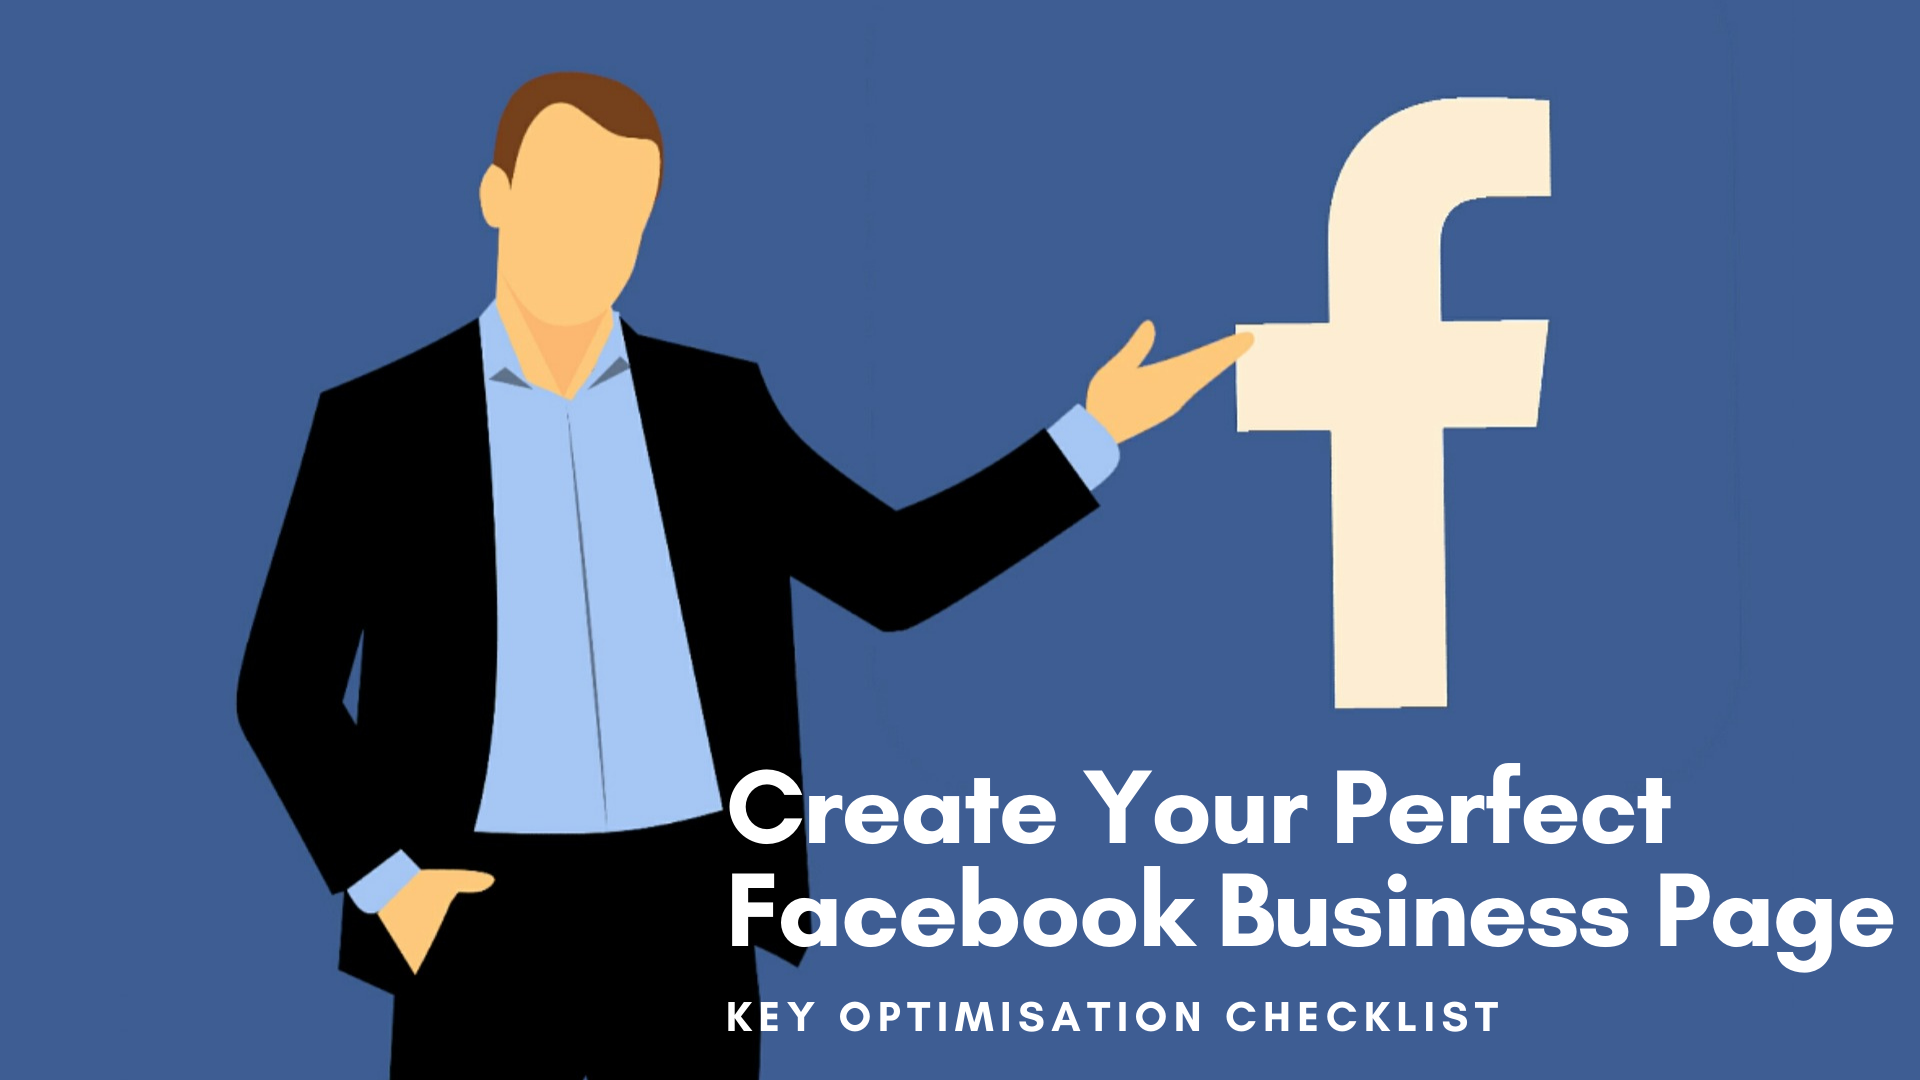 10 steps to Perfect your Facebook Business Page